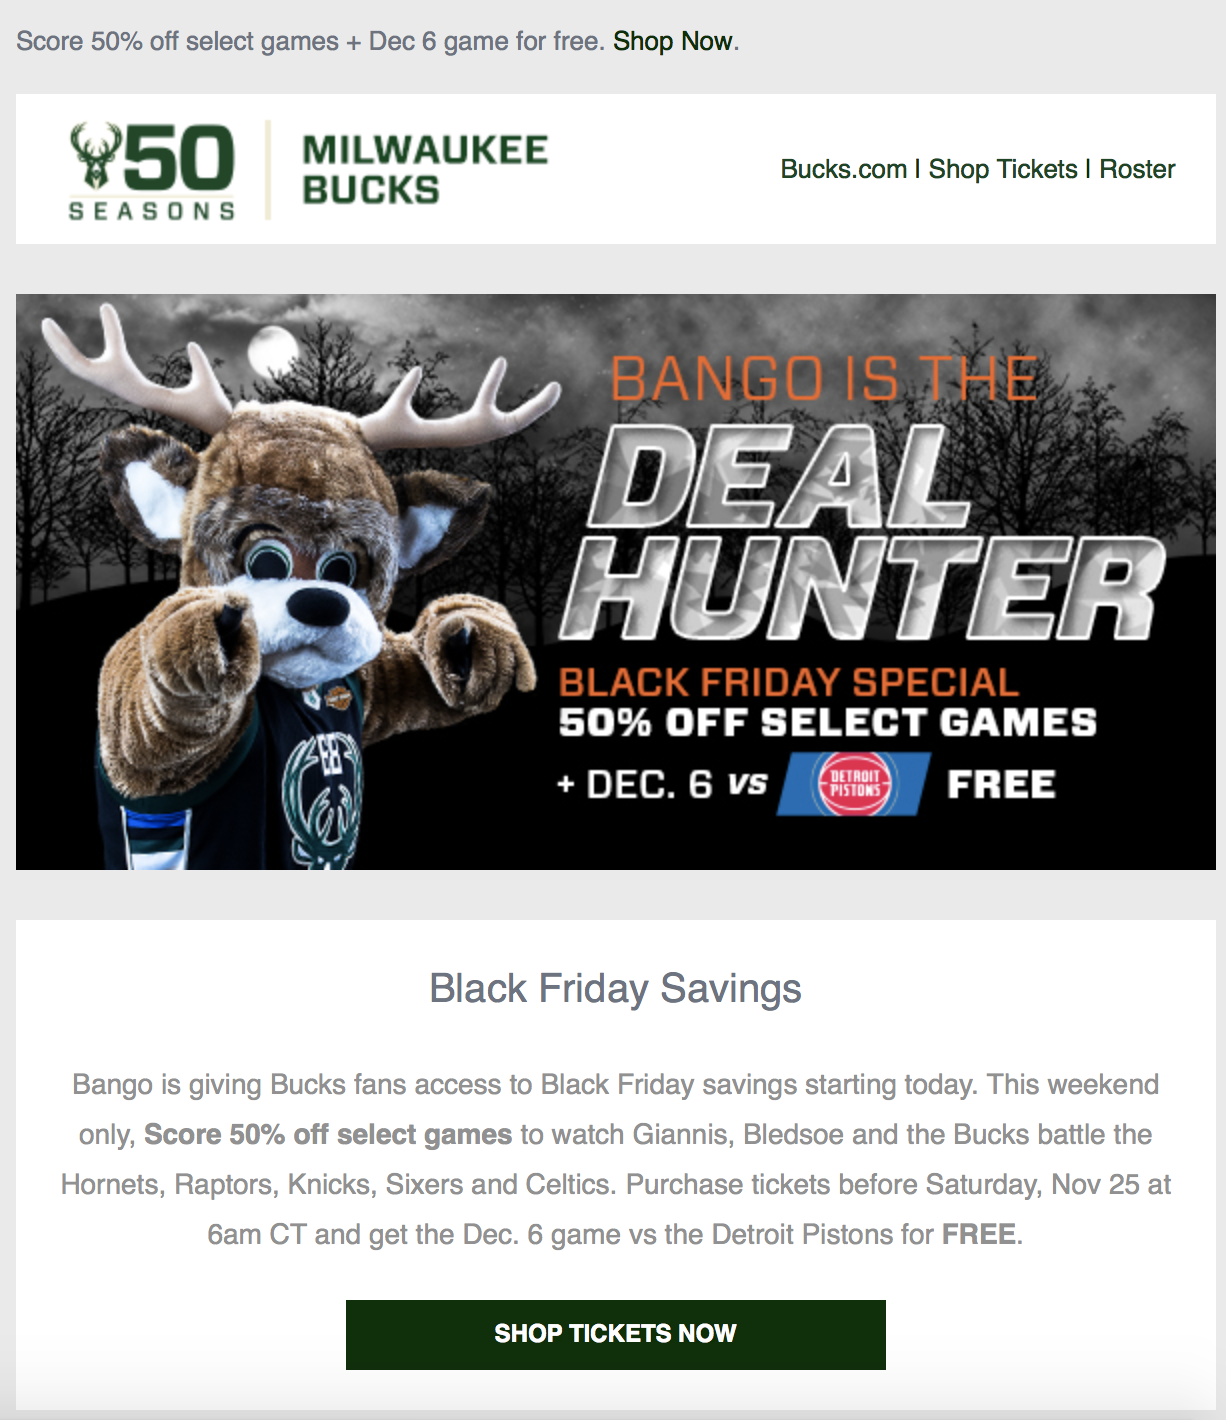 Black Friday deal from Milwaukee Bucks